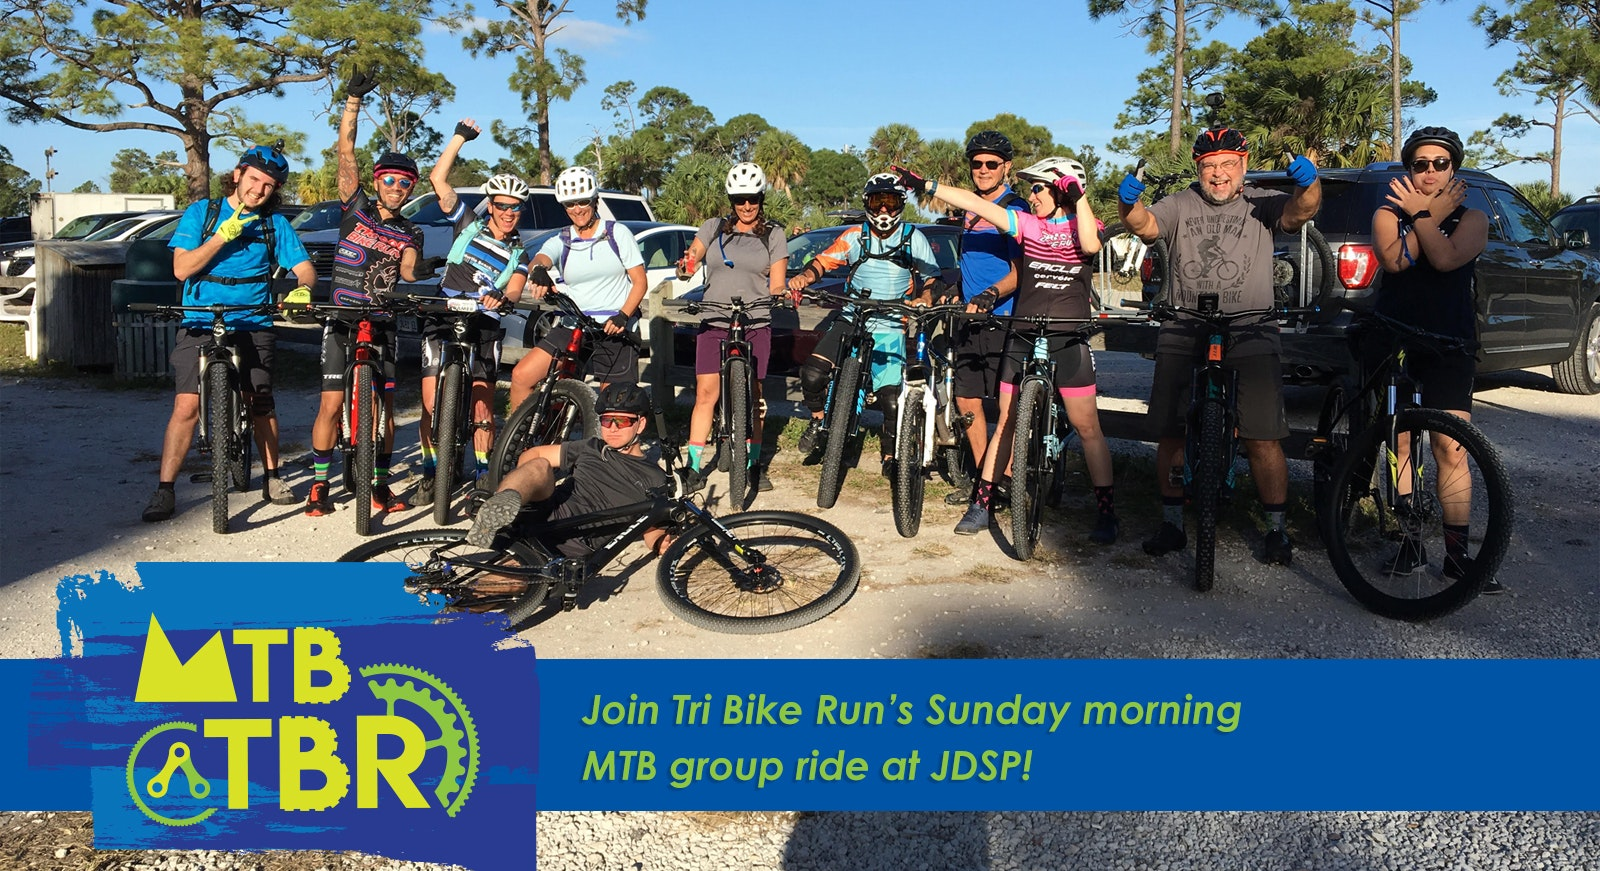 TBR MTB - Join us at Jonathan Dickinson State Park on Sunday mornings at 8:15am